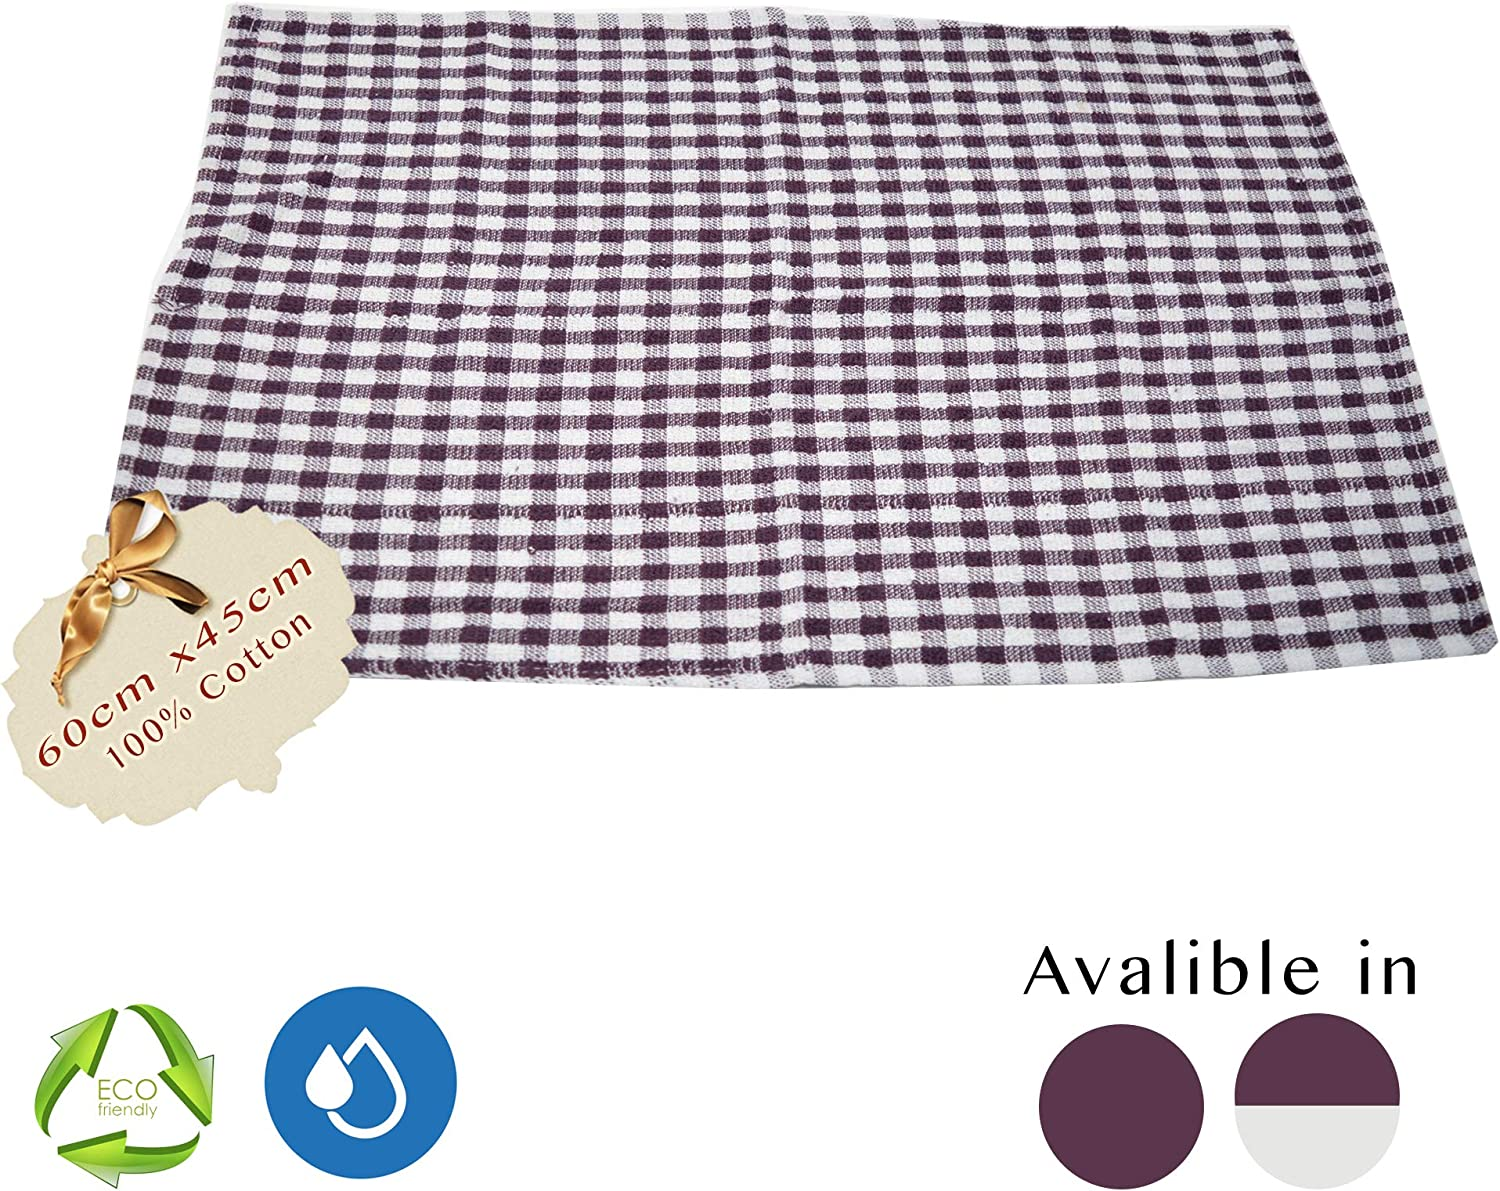 4 45cm x 60cm Blue Pack of 3, 18 x 24 Xelay 100/% Cotton Terry Tea Towel Egyptian Wonderdry Soft Monocheck Black//White Jumbo Thick Kitchen Dish Cleaning Drying Cloth Pack of 3 6 10 5 15